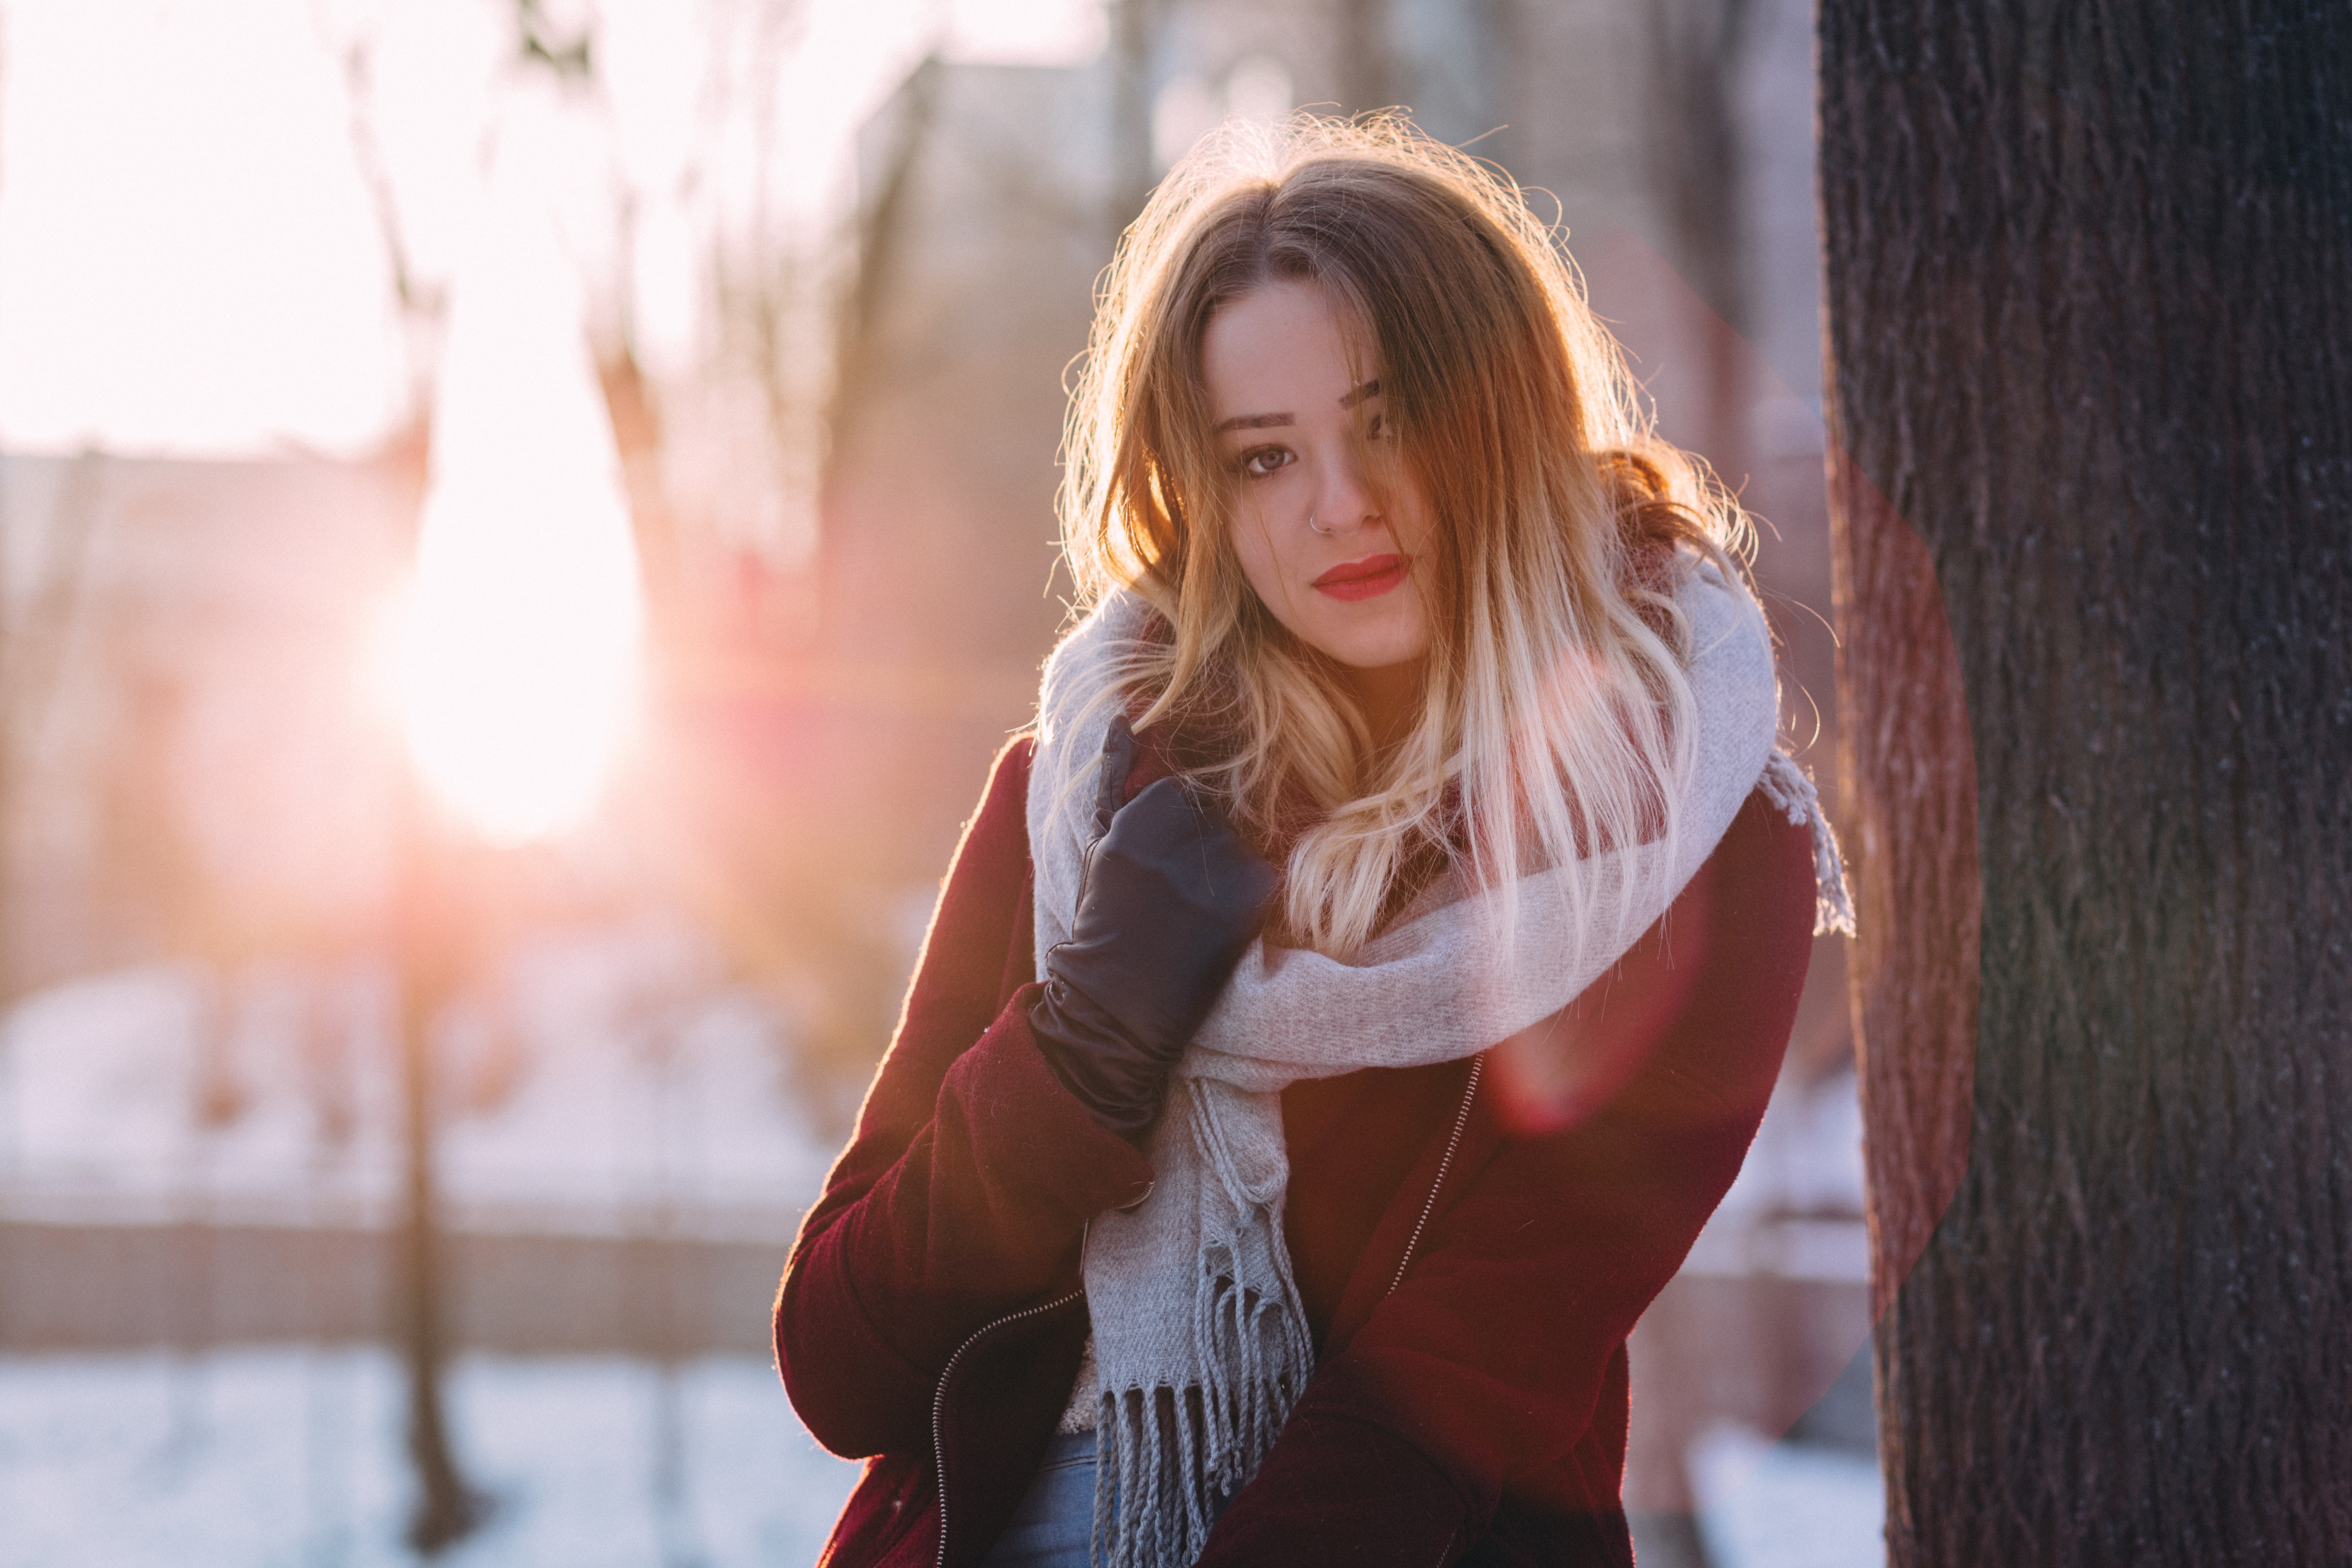 portrait-of-young-woman-during-winter-305555